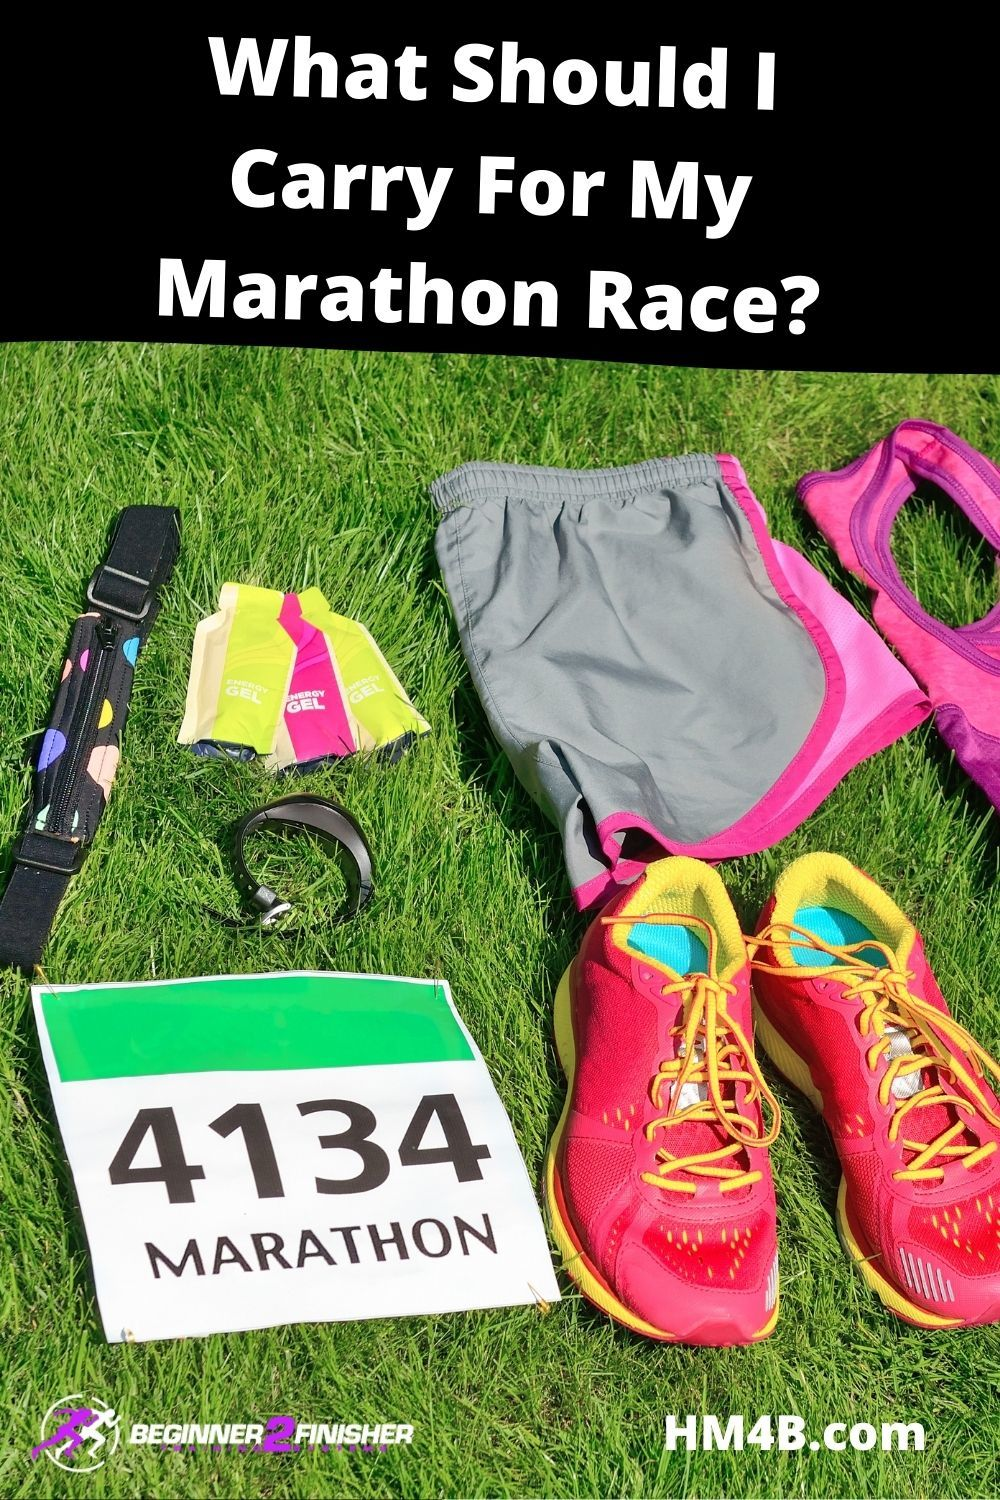 What should I carry during a marathon race?